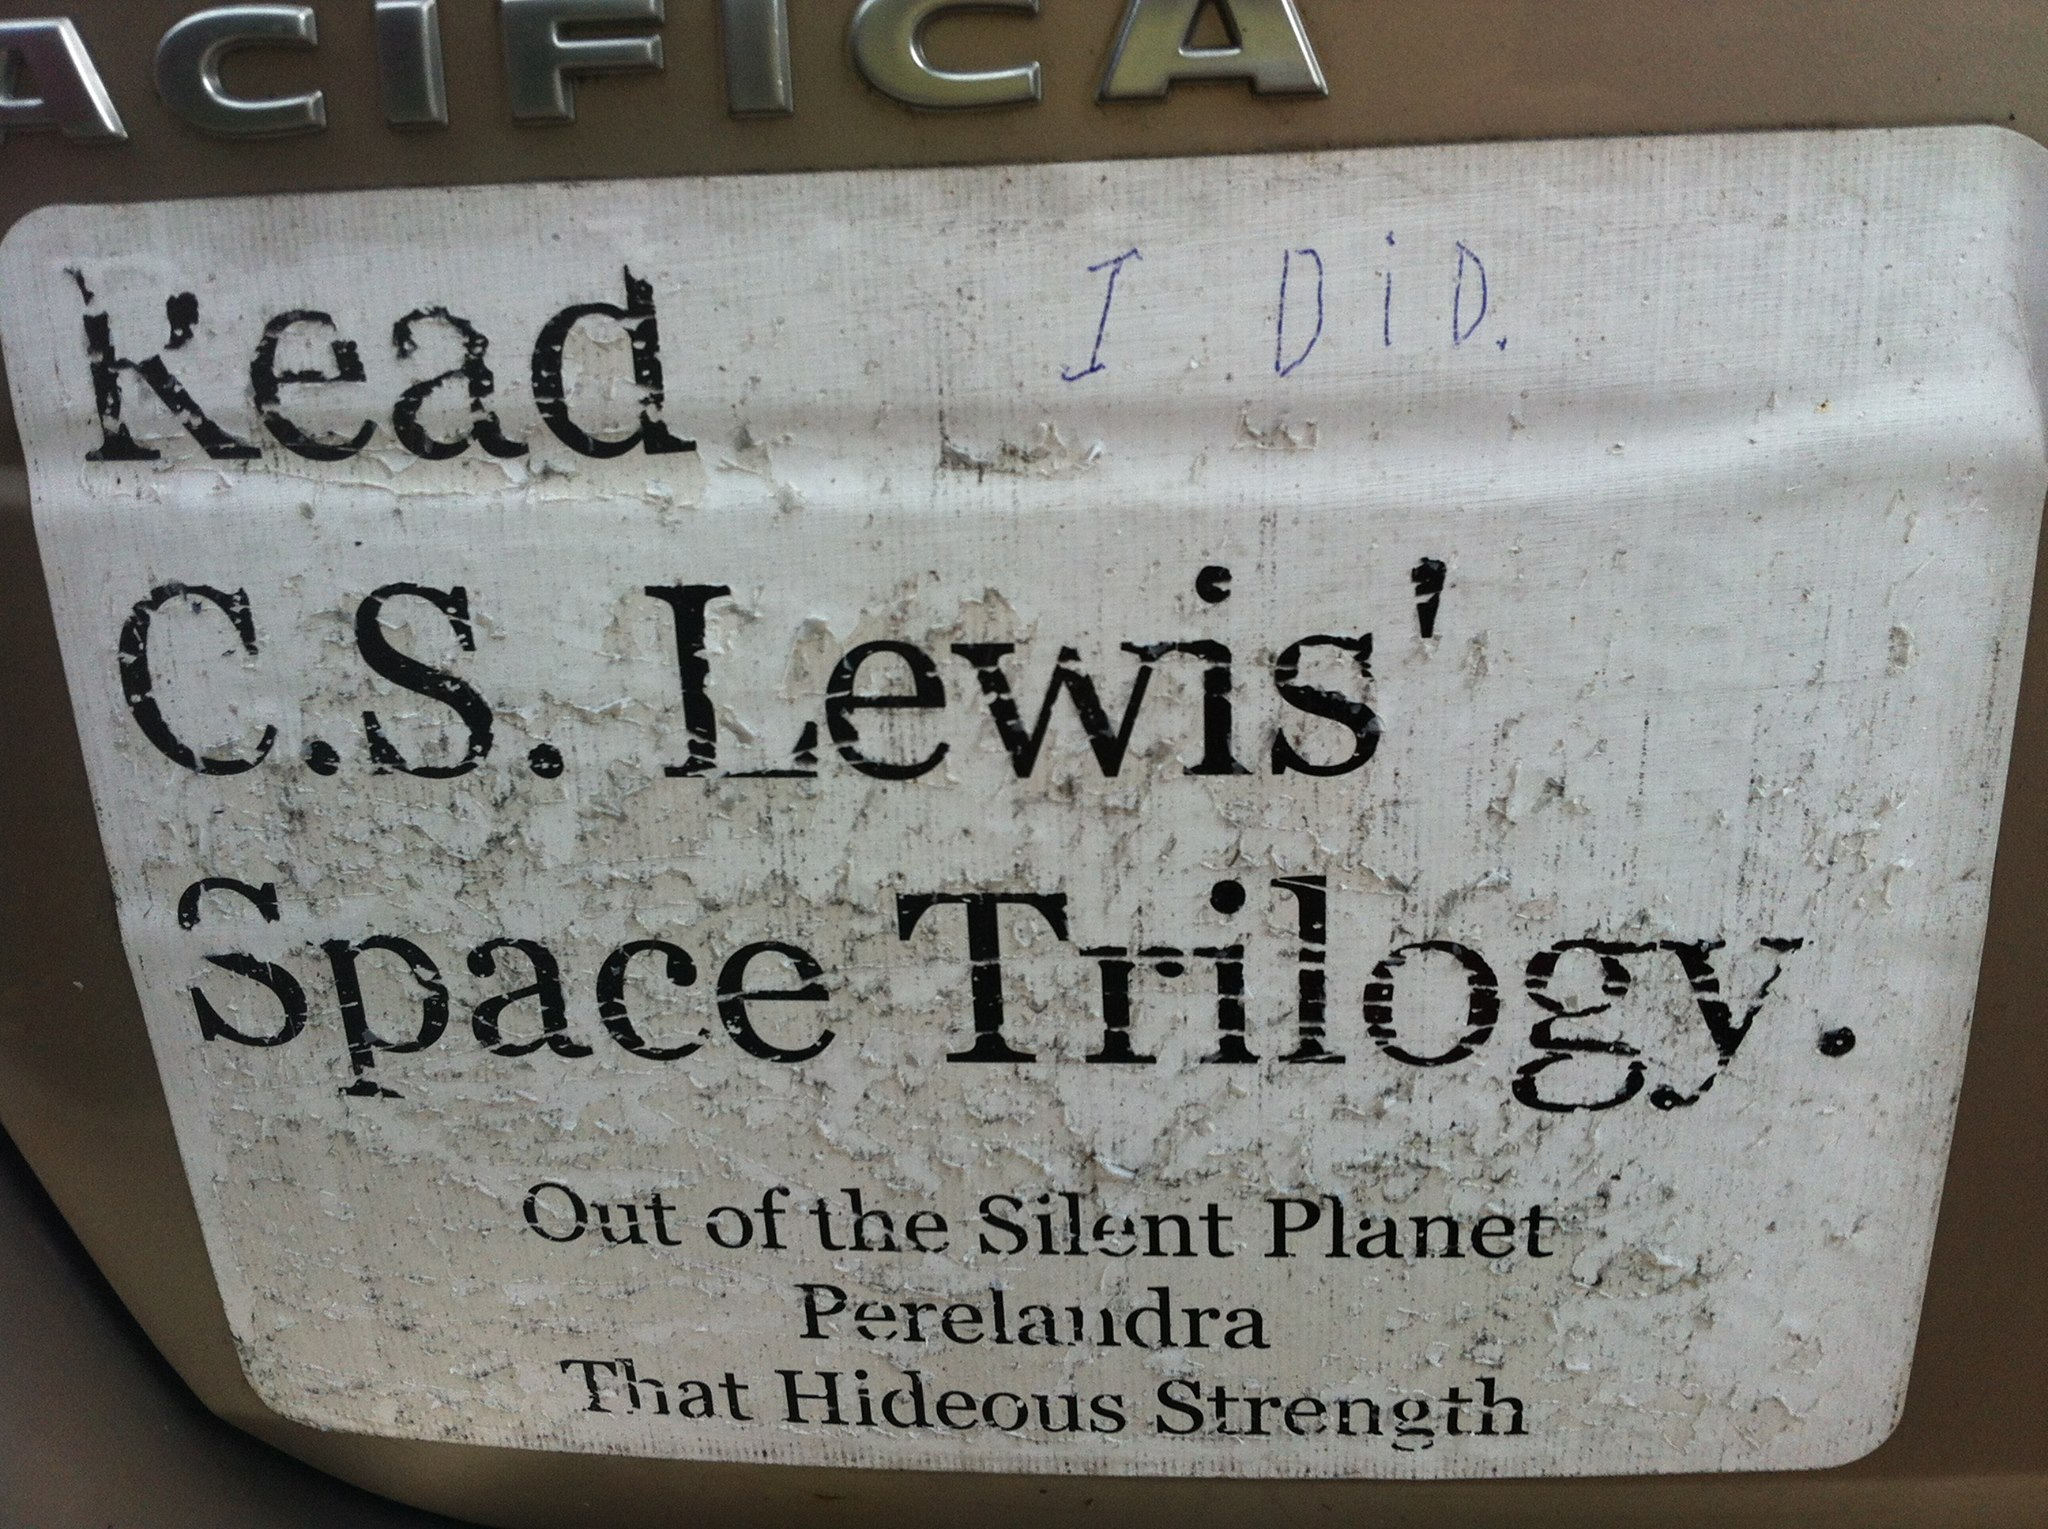 philosophy and culture restatement of the obvious our custom cs lewis bumper sticker urging all motorists to his space trilogy